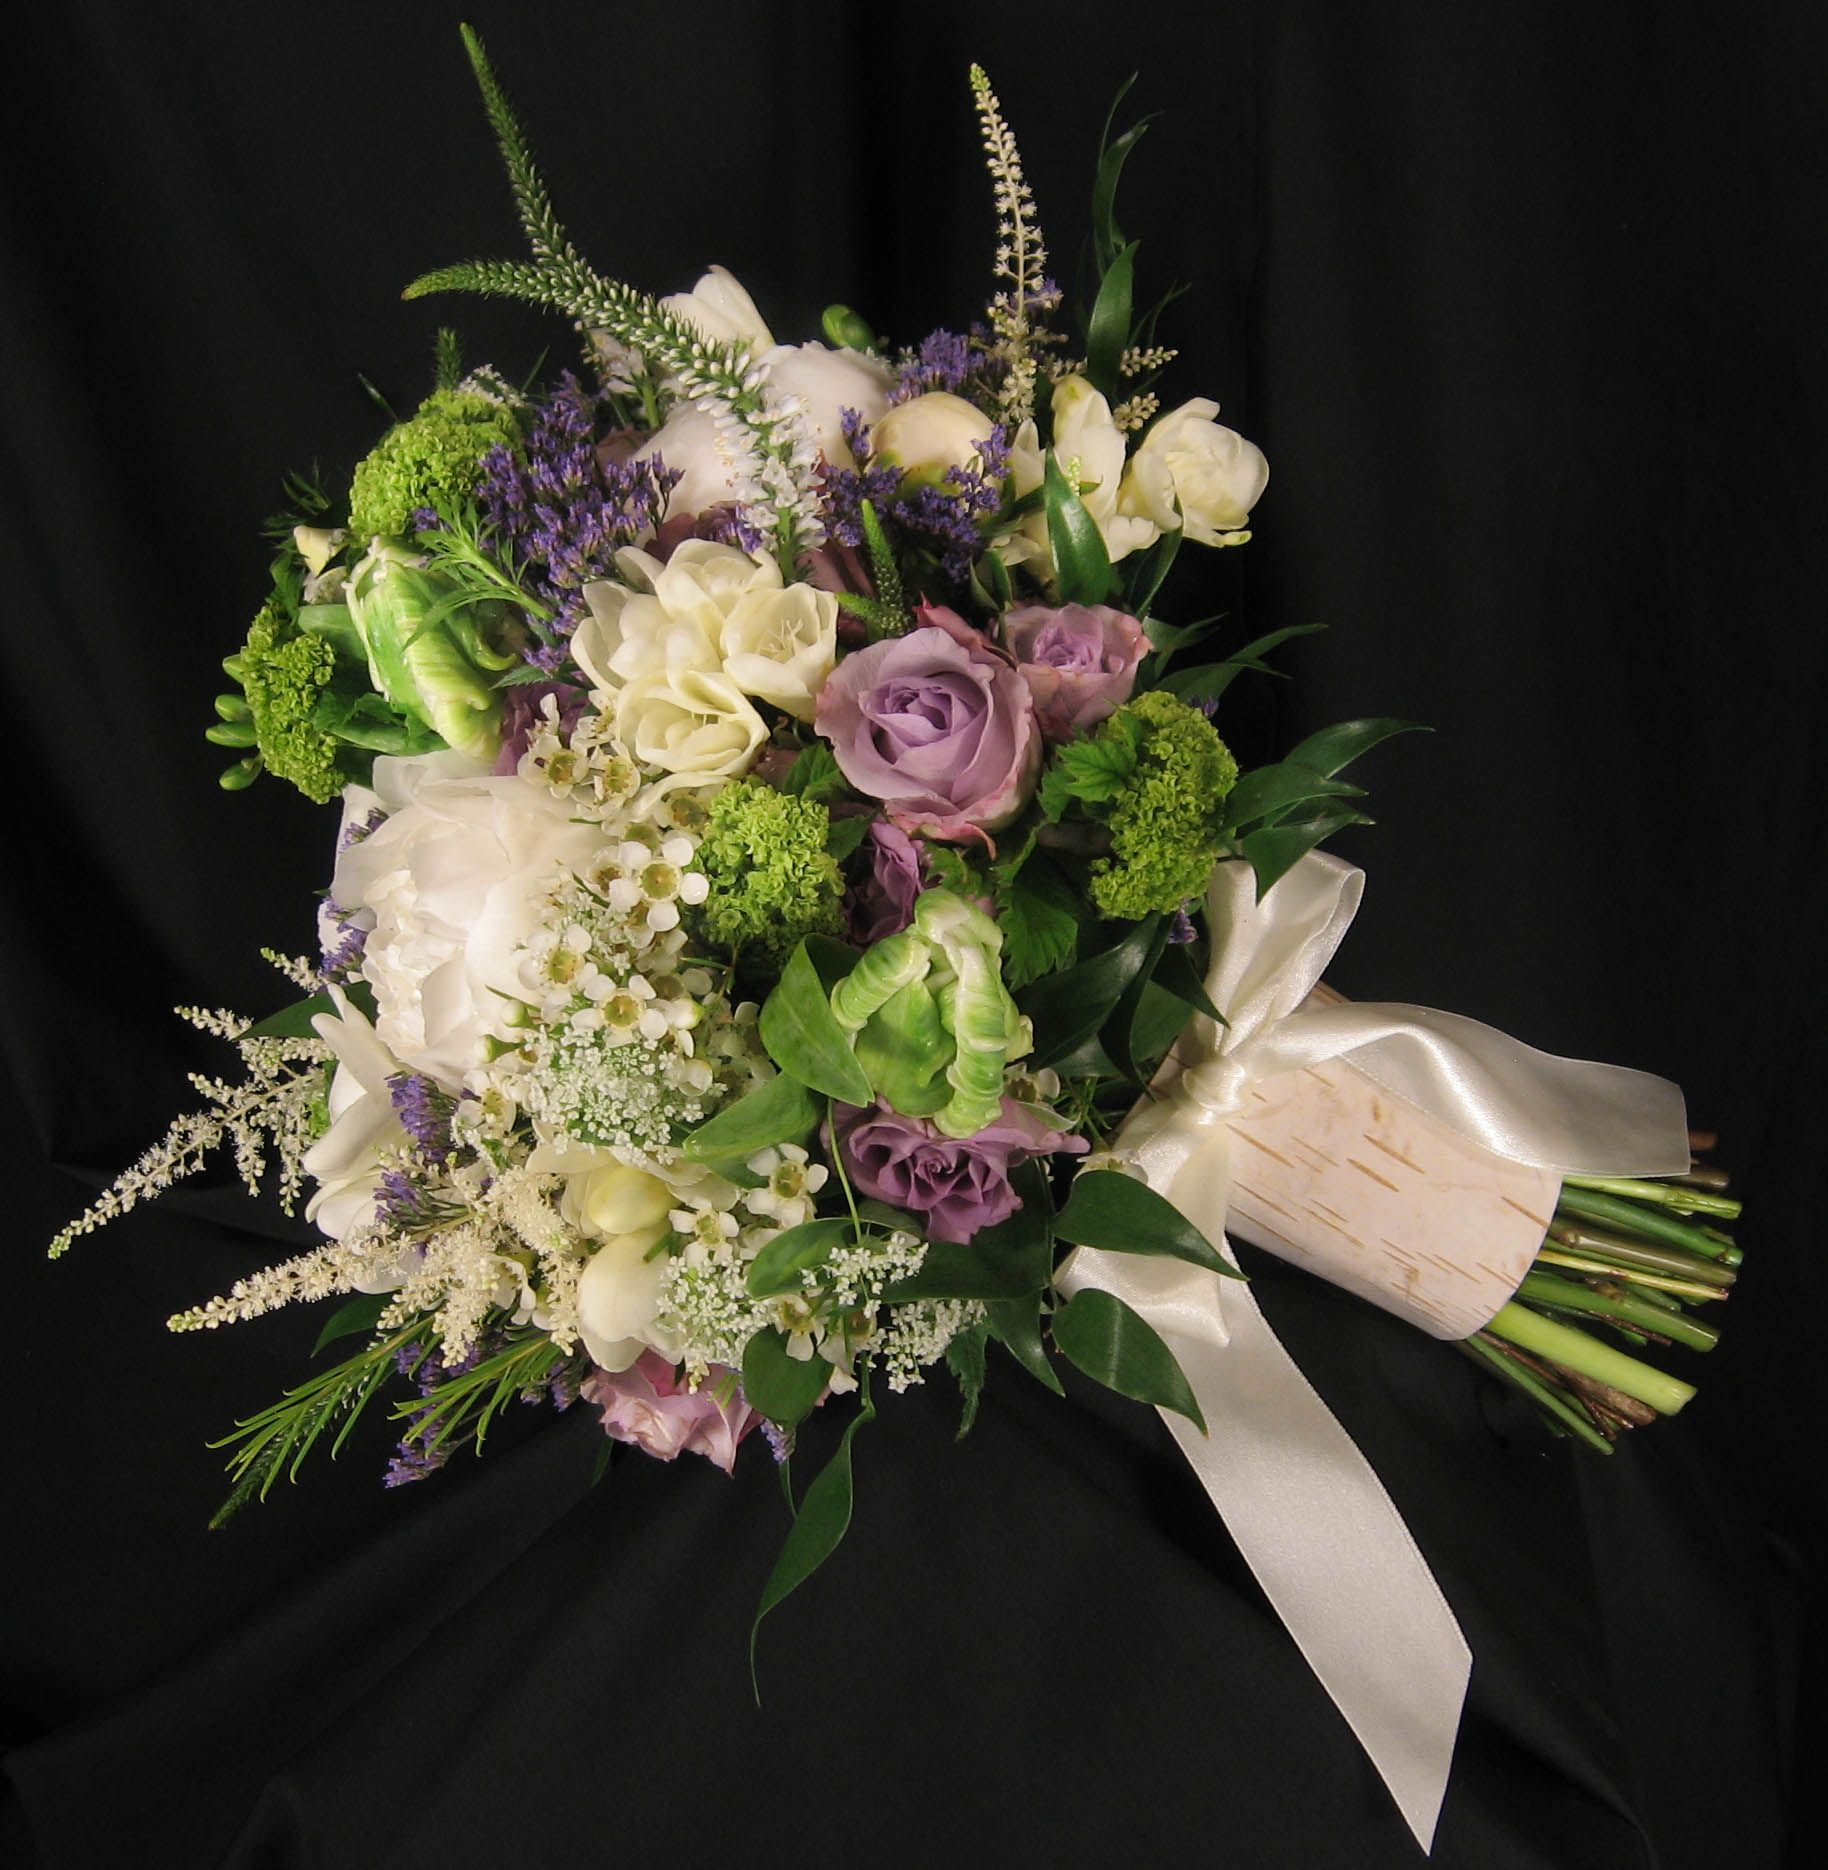 Lavender Flower Hair Wedding Style: Rustic Inspired Bridal Bouquet Featuring White Peonies